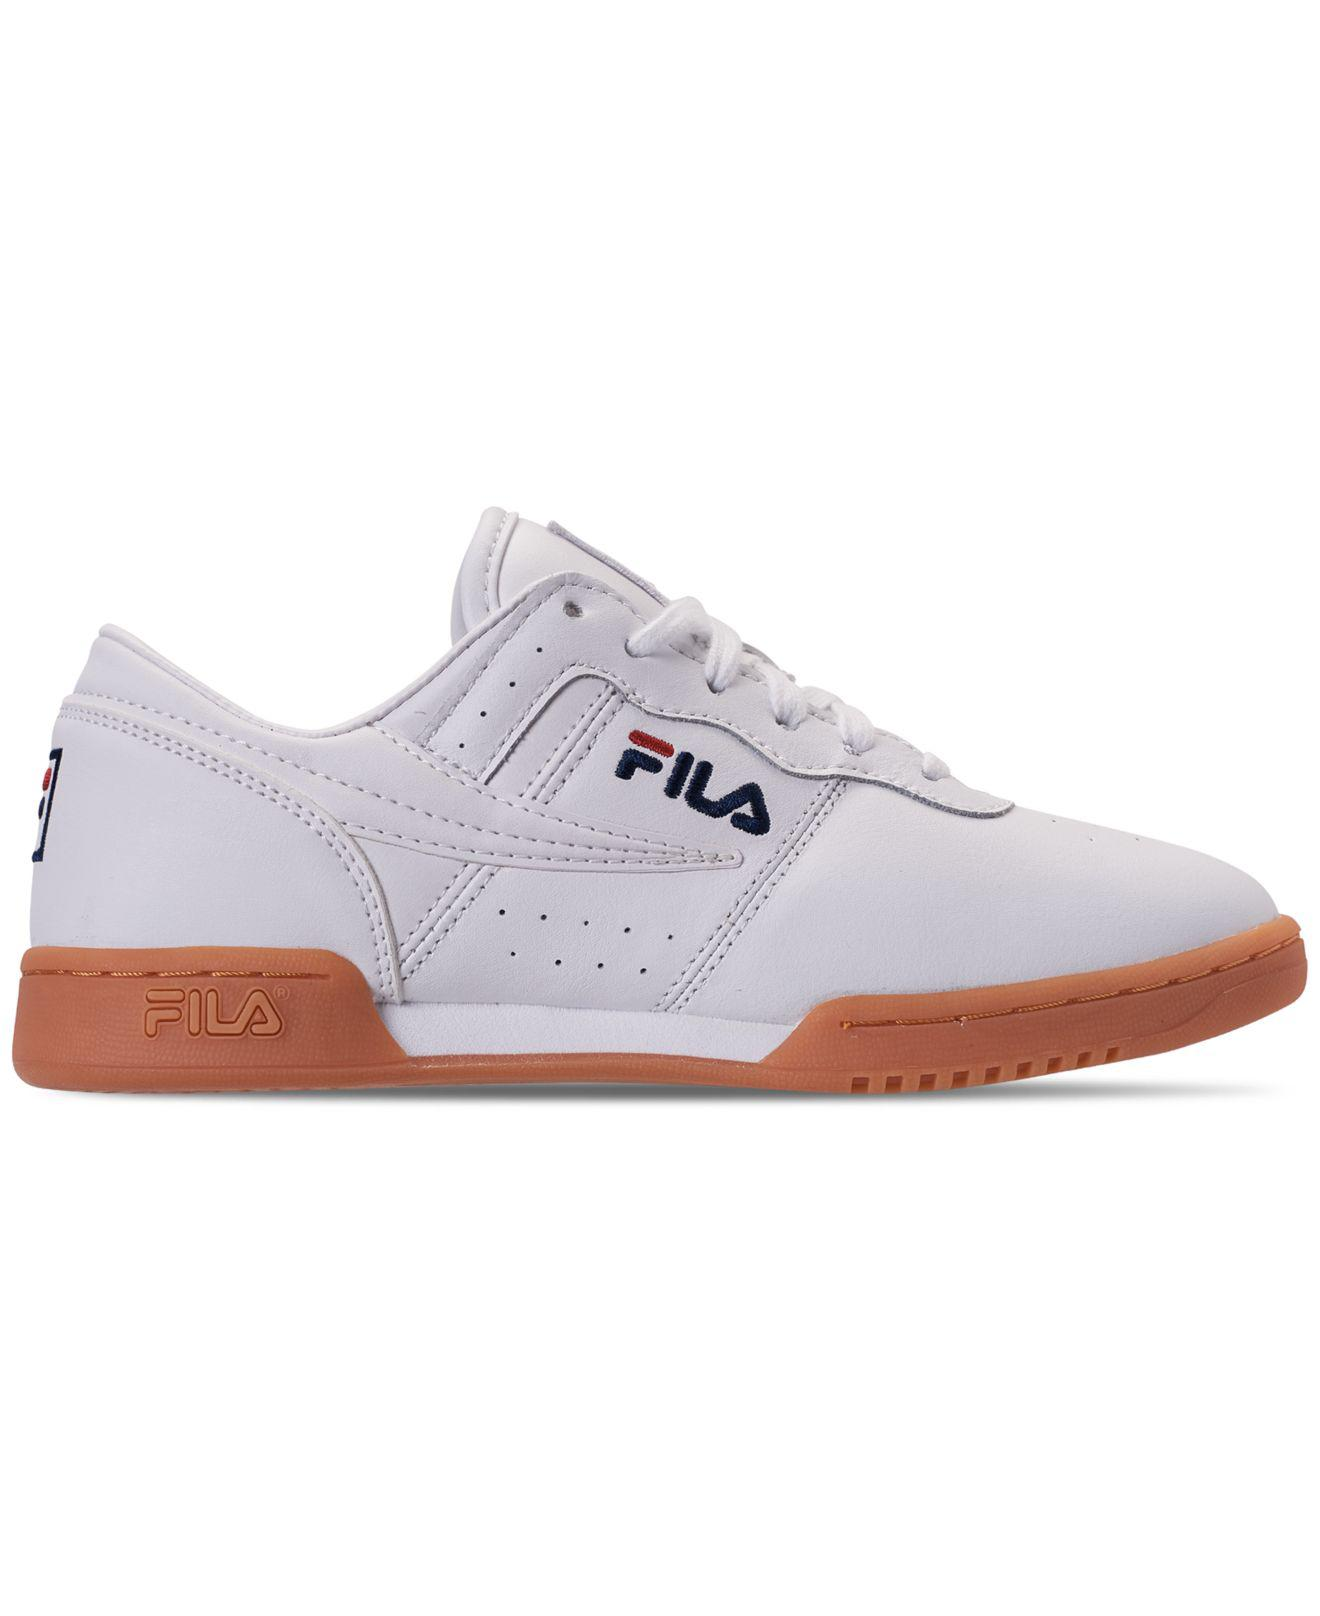 0ba037bcd994 Lyst - Fila Original Fitness Casual Athletic Sneakers From Finish Line in  White